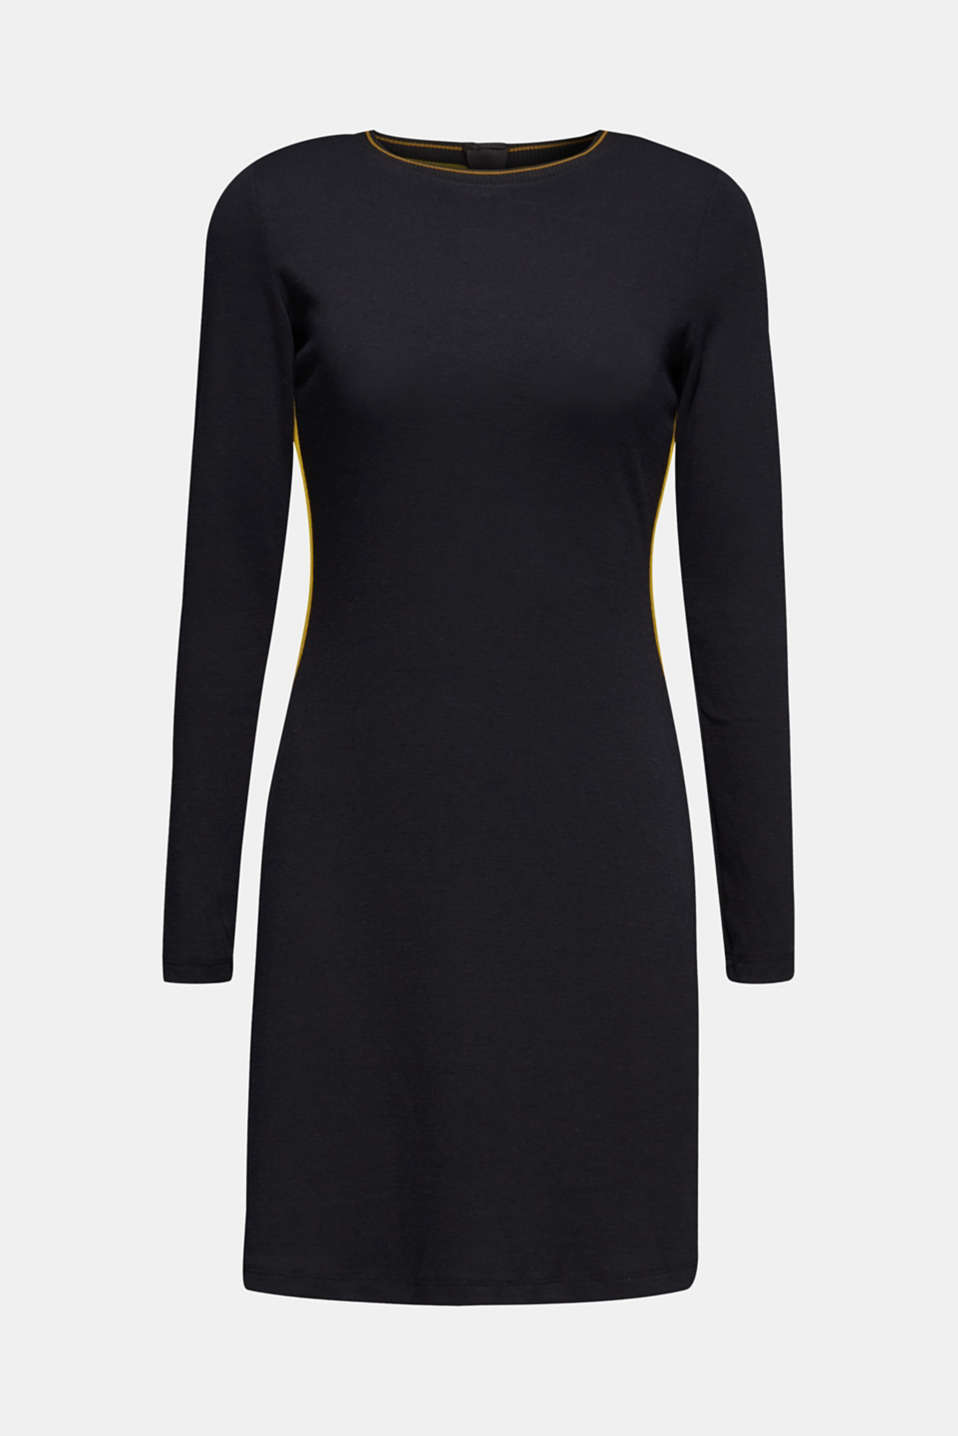 Piped stretch jersey dress, BLACK, detail image number 5